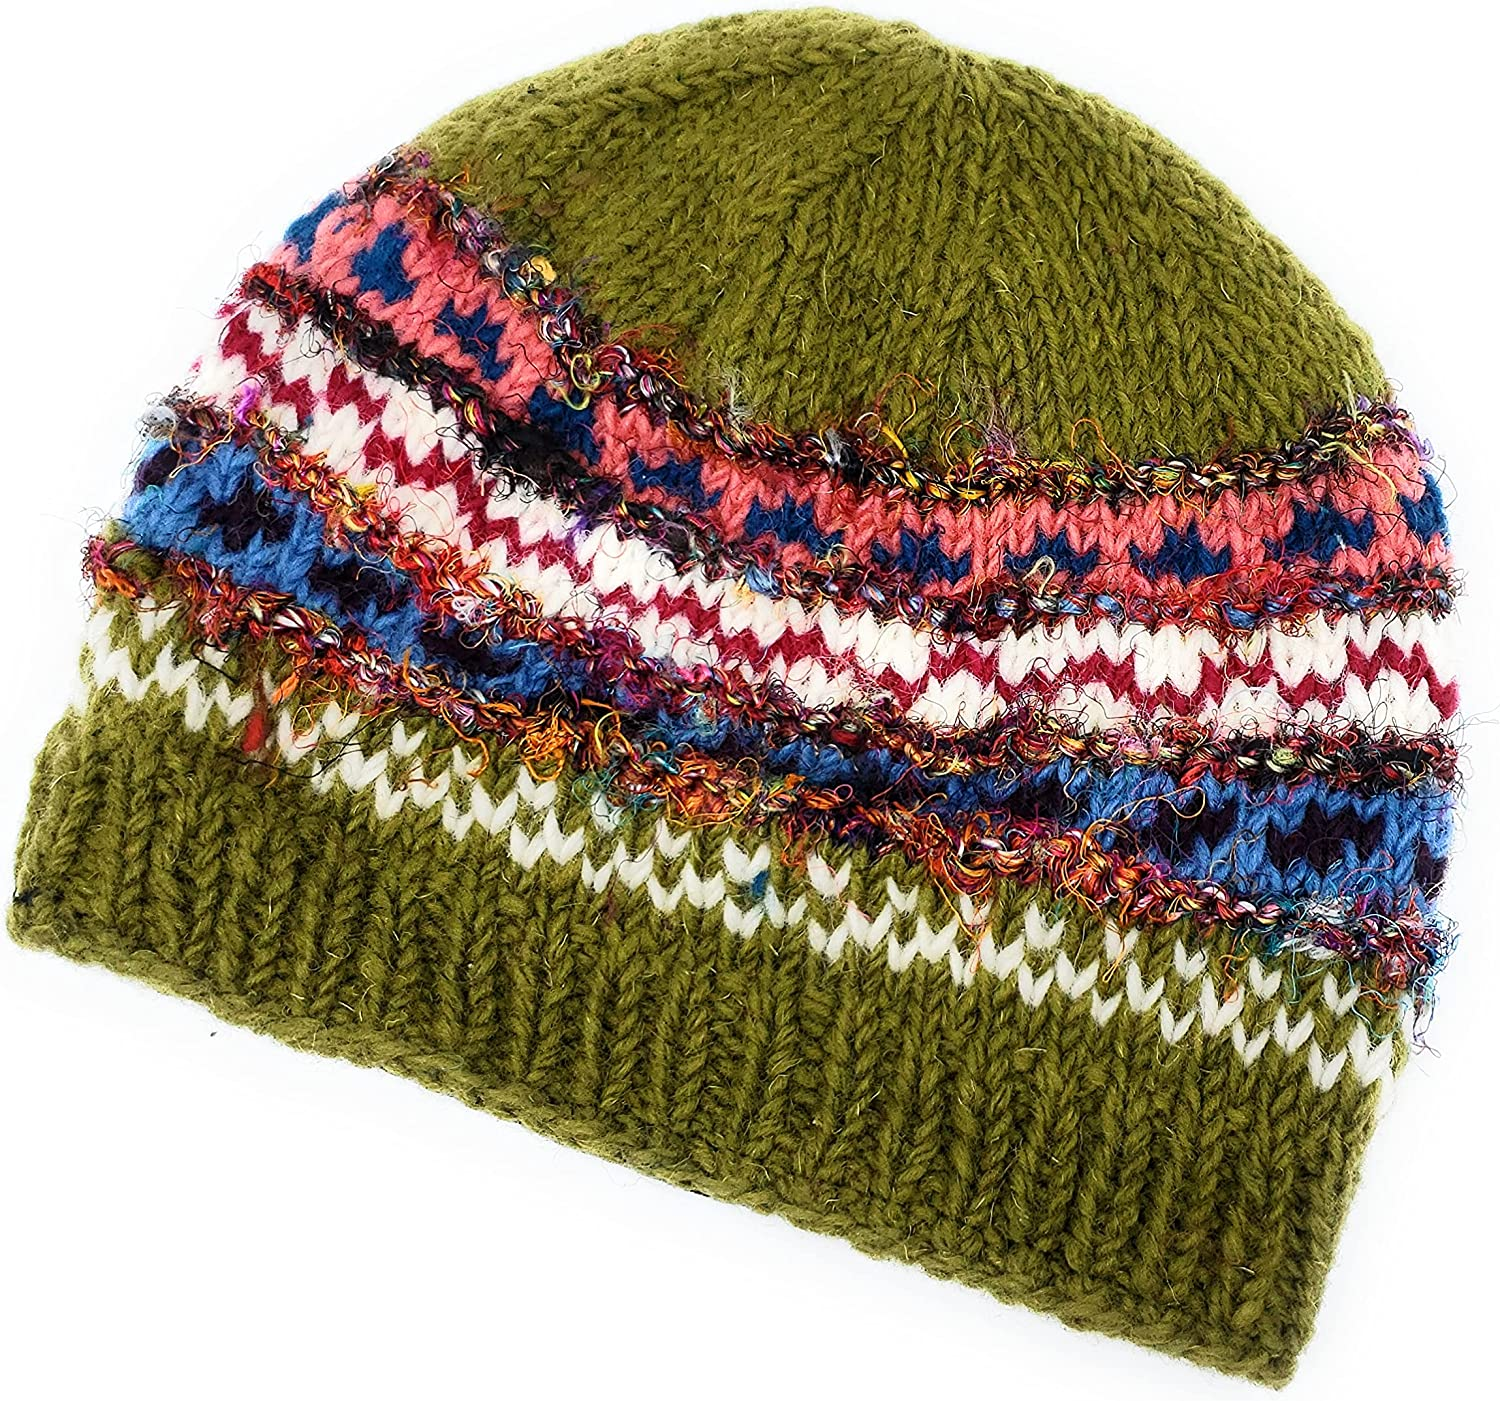 Hand Knit Wool and Recycled Silk Beanie Hat Fleece Lined Made in Nepal